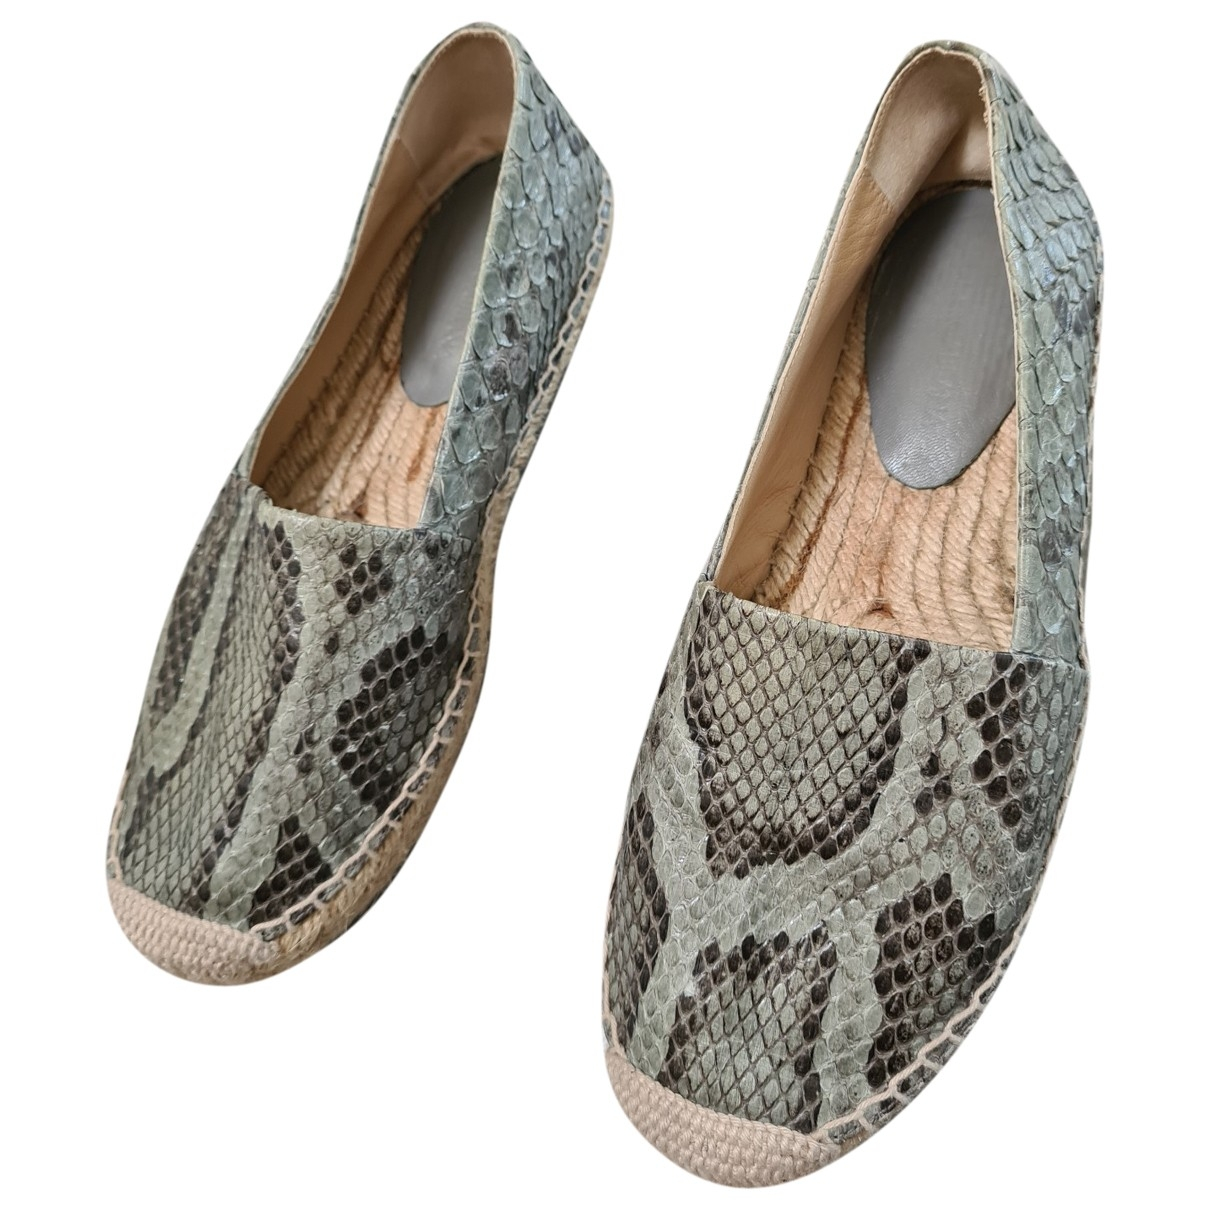 Dolce & Gabbana \N Grey Python Espadrilles for Women 36.5 EU